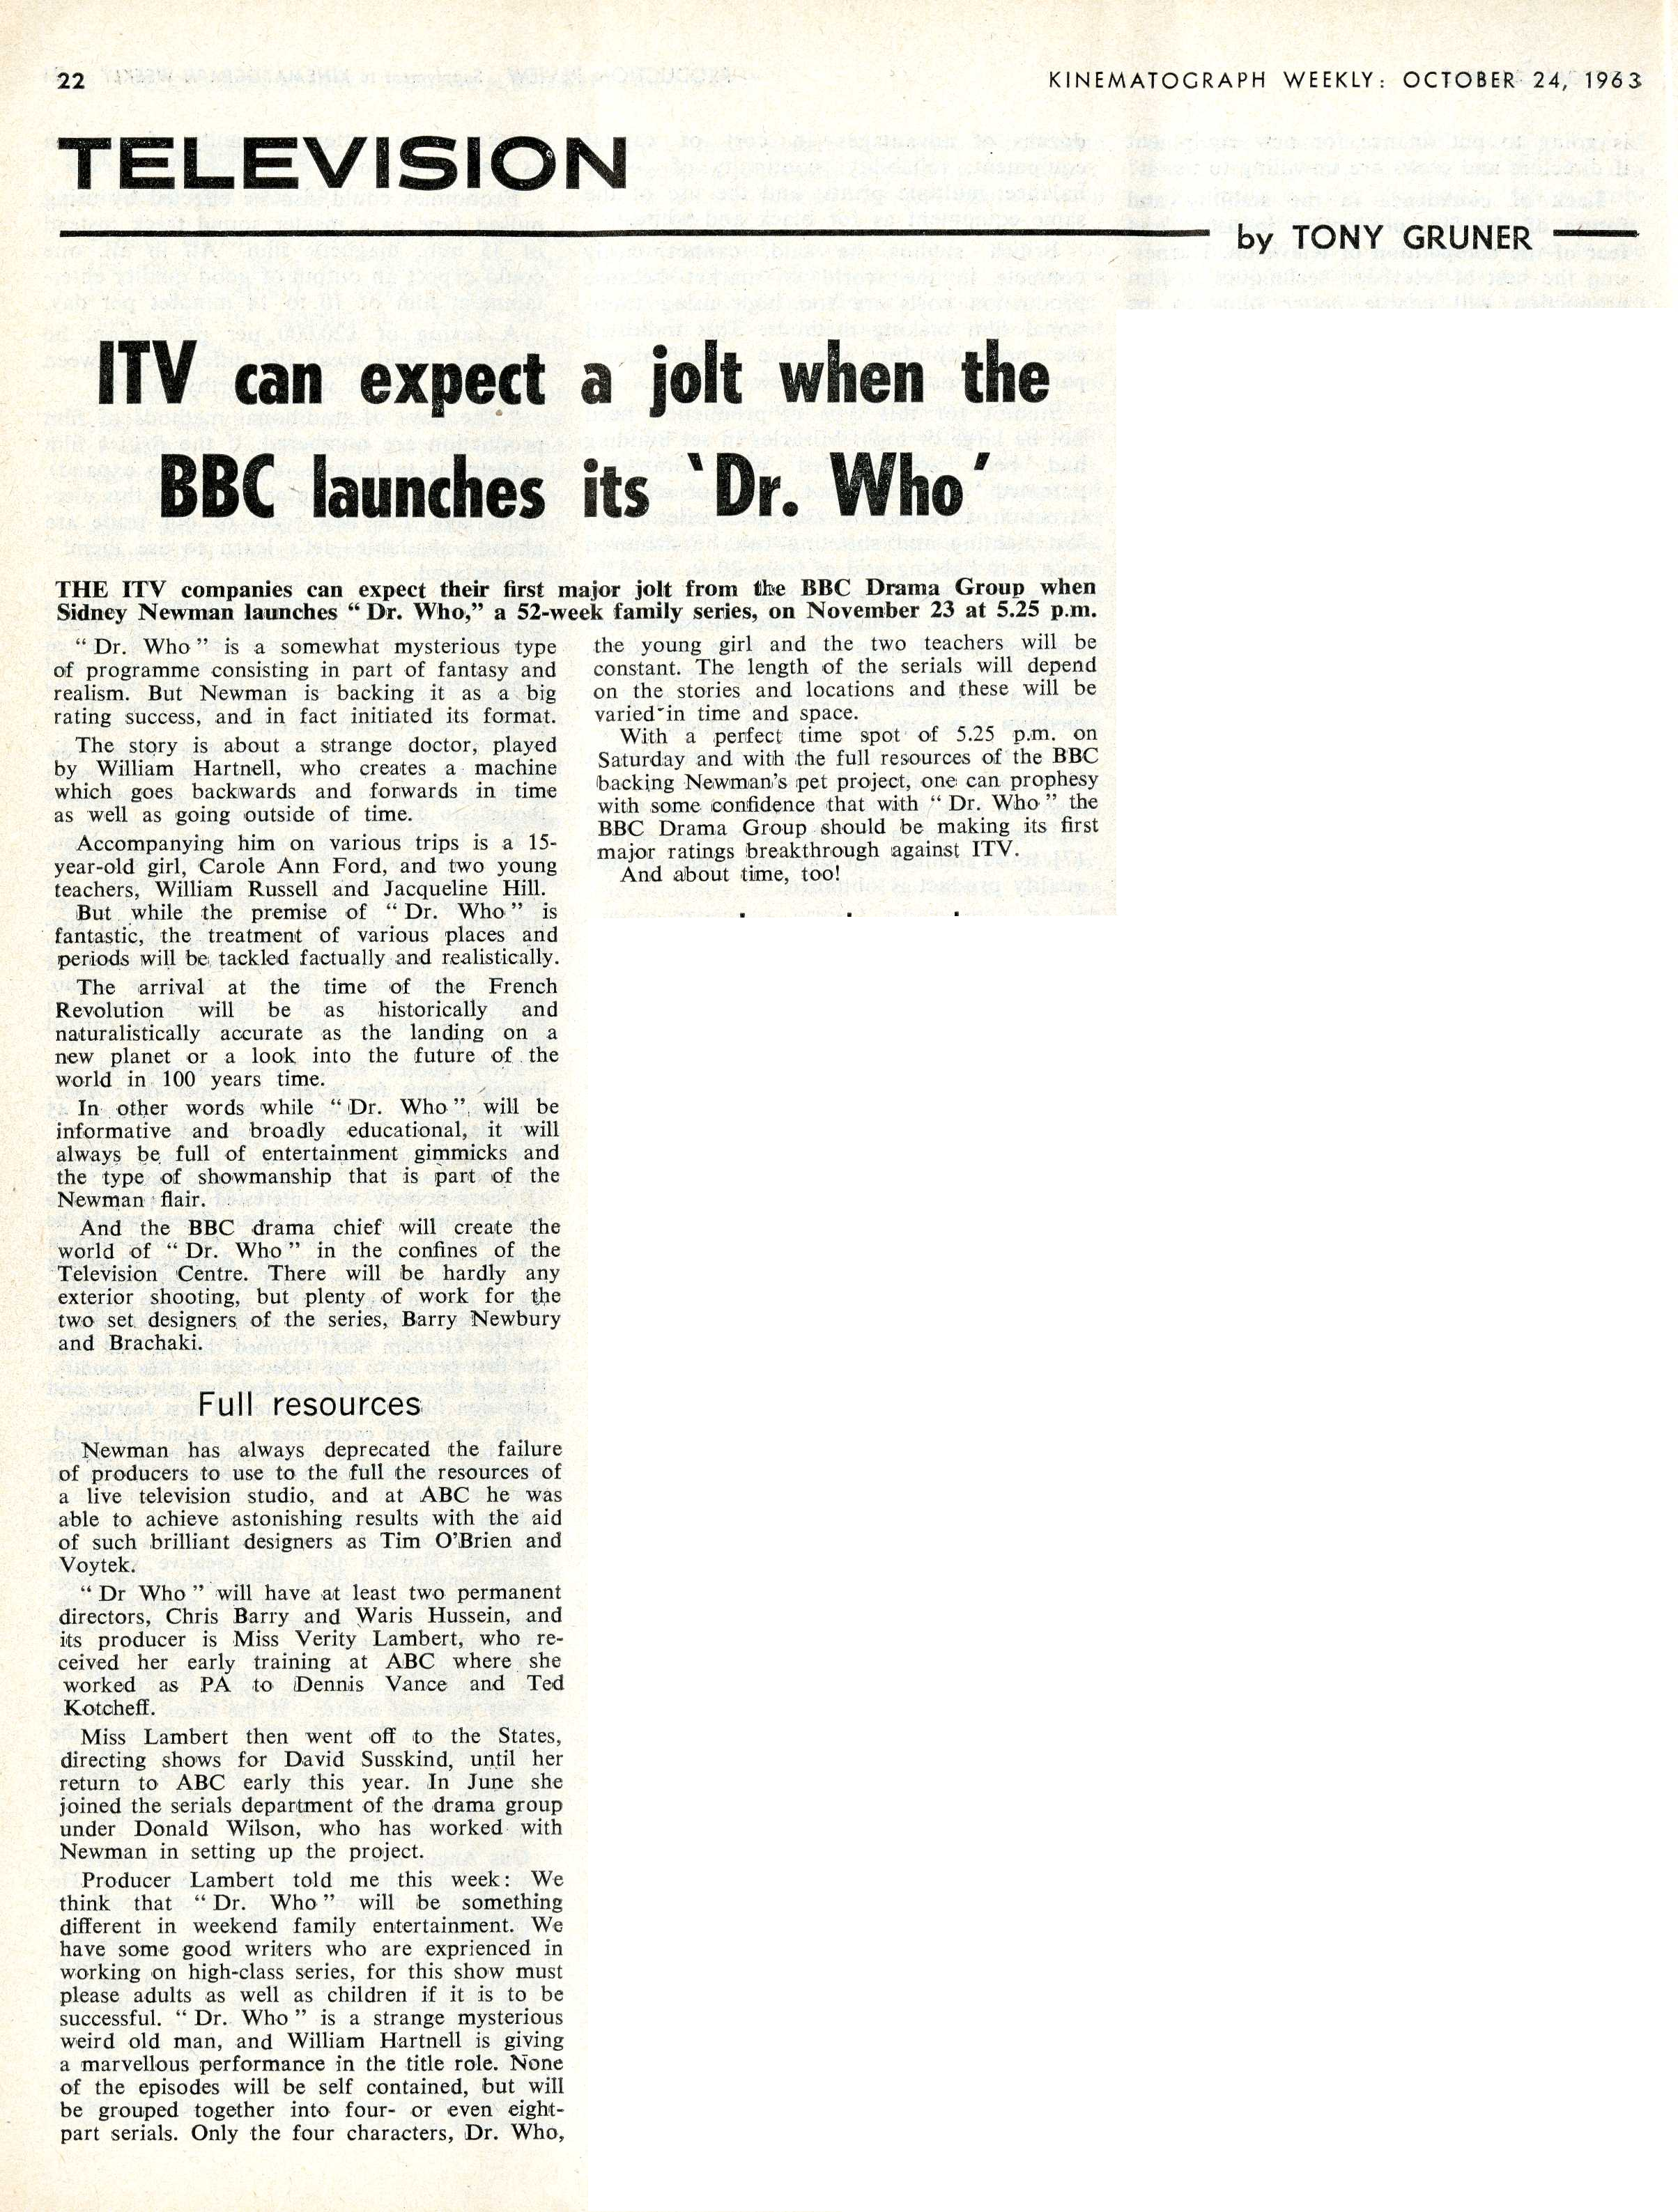 Pre-broadcast media coverage in Kine Weekly, 24 October 1963